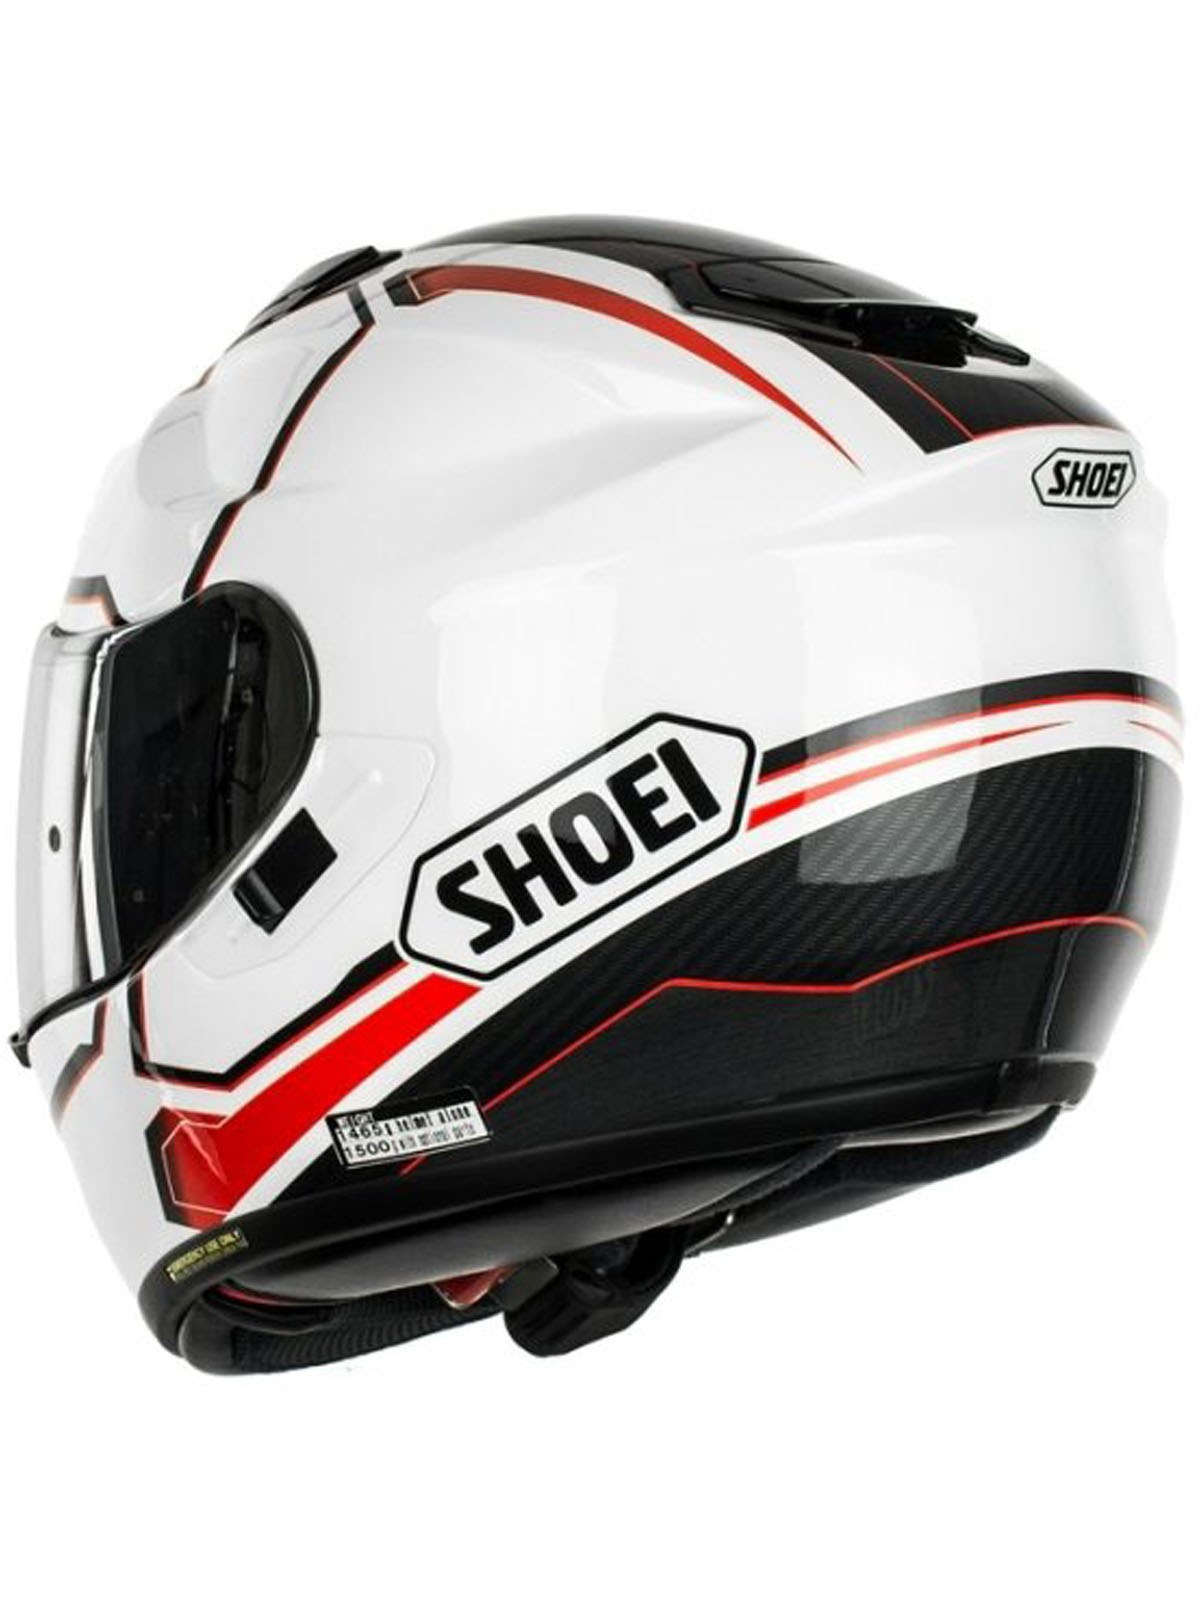 Comparatif Casque Moto Shoei Gt Air Voiture Moto Et Auto